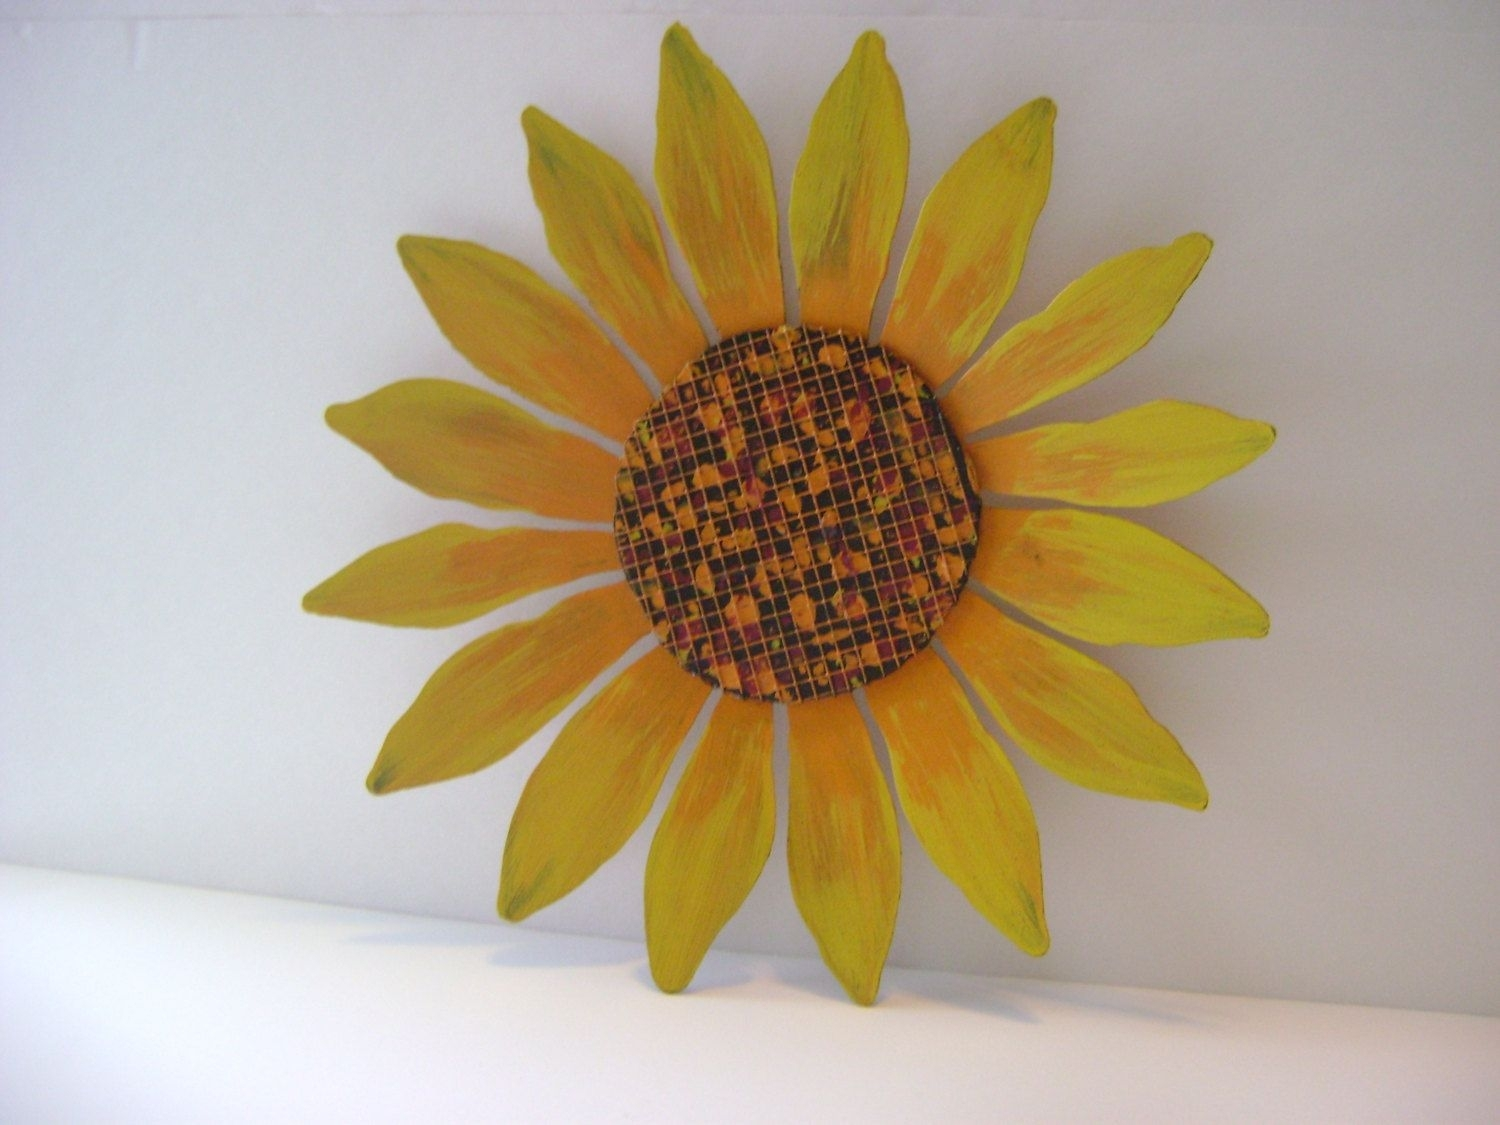 Yellow / Orange Sunflower Wall Art, Sculptured Metal Garden Art Intended For Most Up To Date Sunflower Wall Art (View 19 of 20)